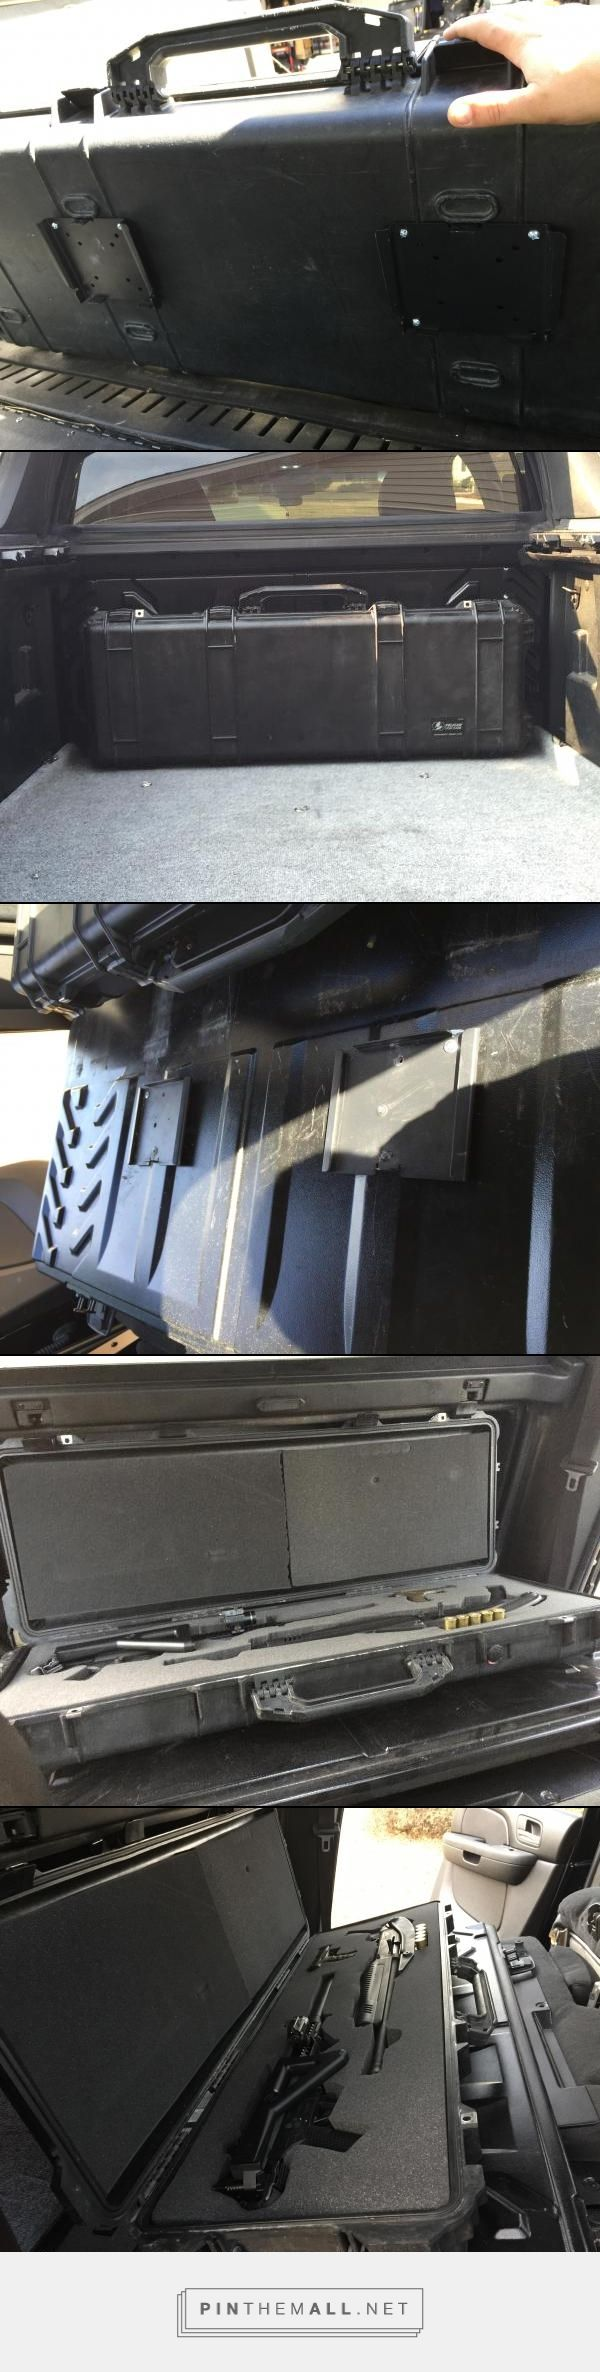 2007 Z71 Chevy Avalanche, pelican gun case hidden mount behind rear access door to cargo area. - created via http://pinthemall.net